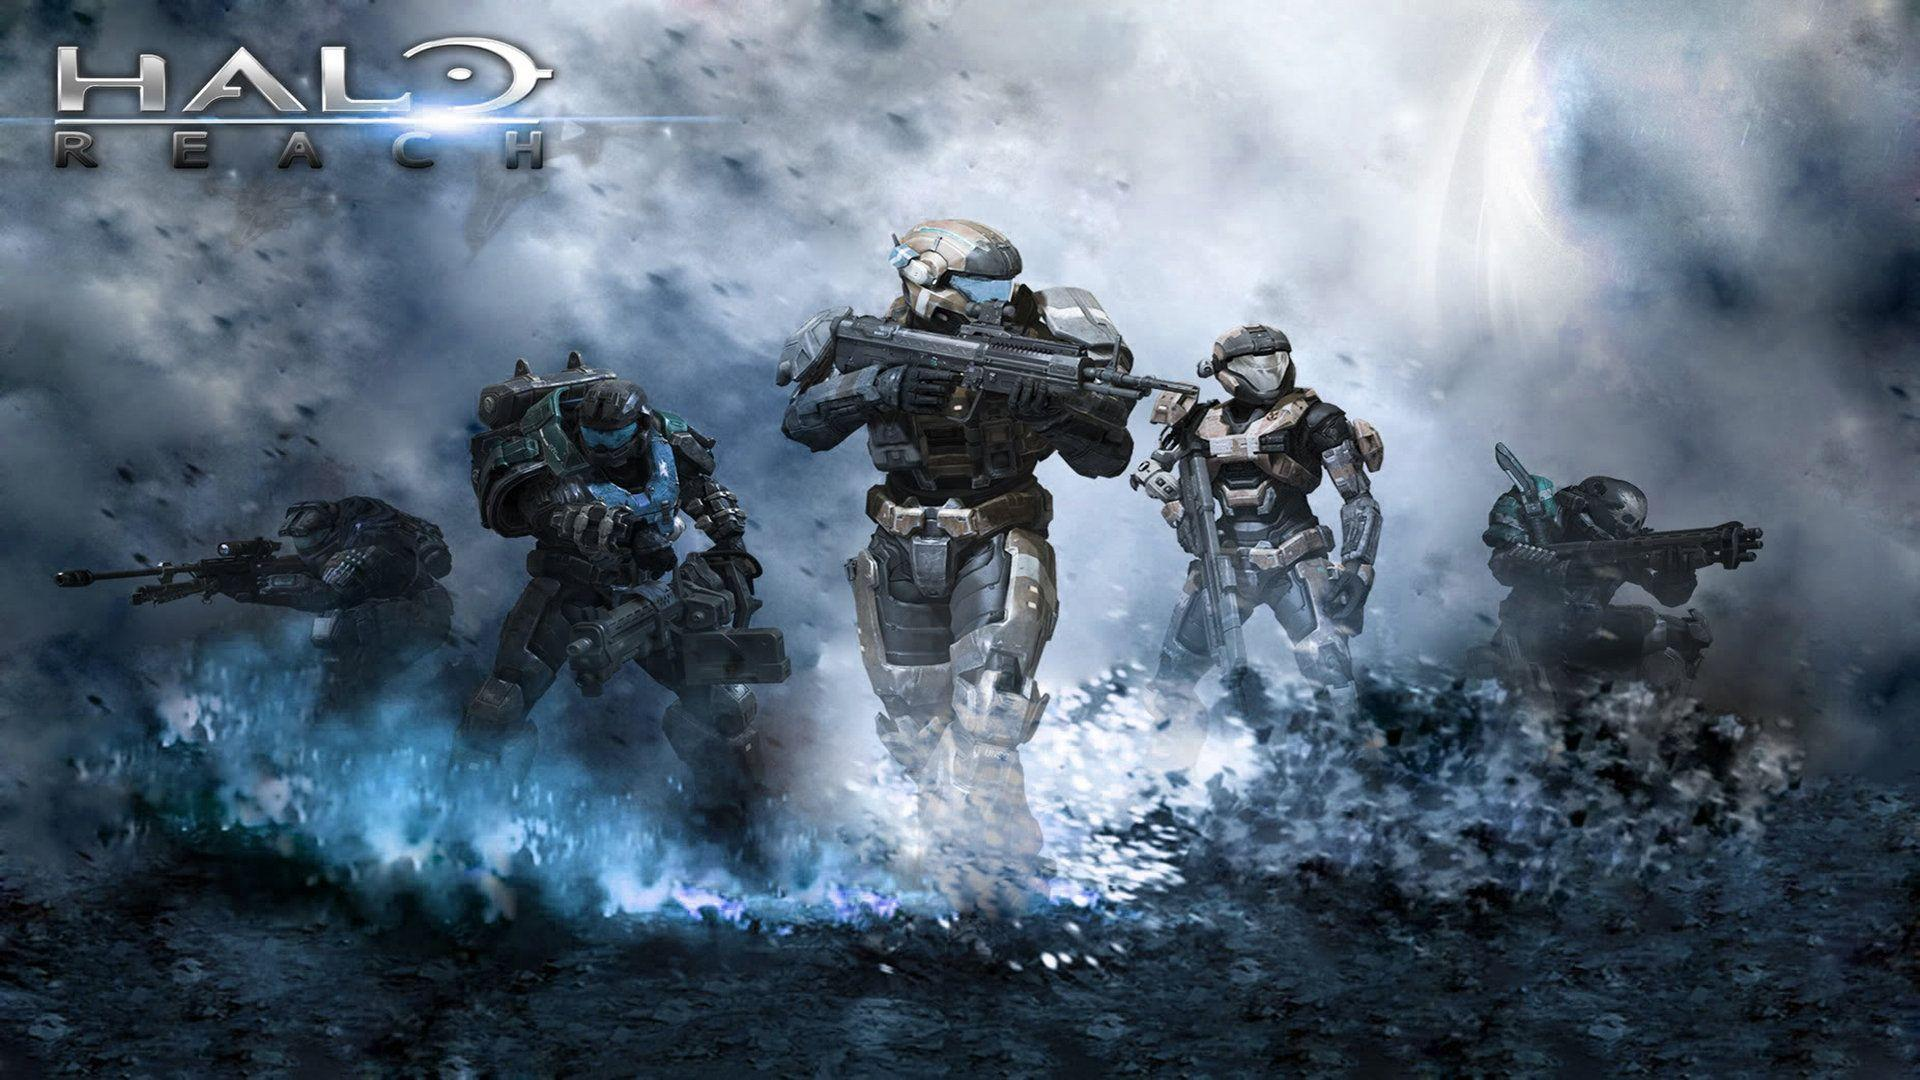 wallpaper free game halo - photo #35